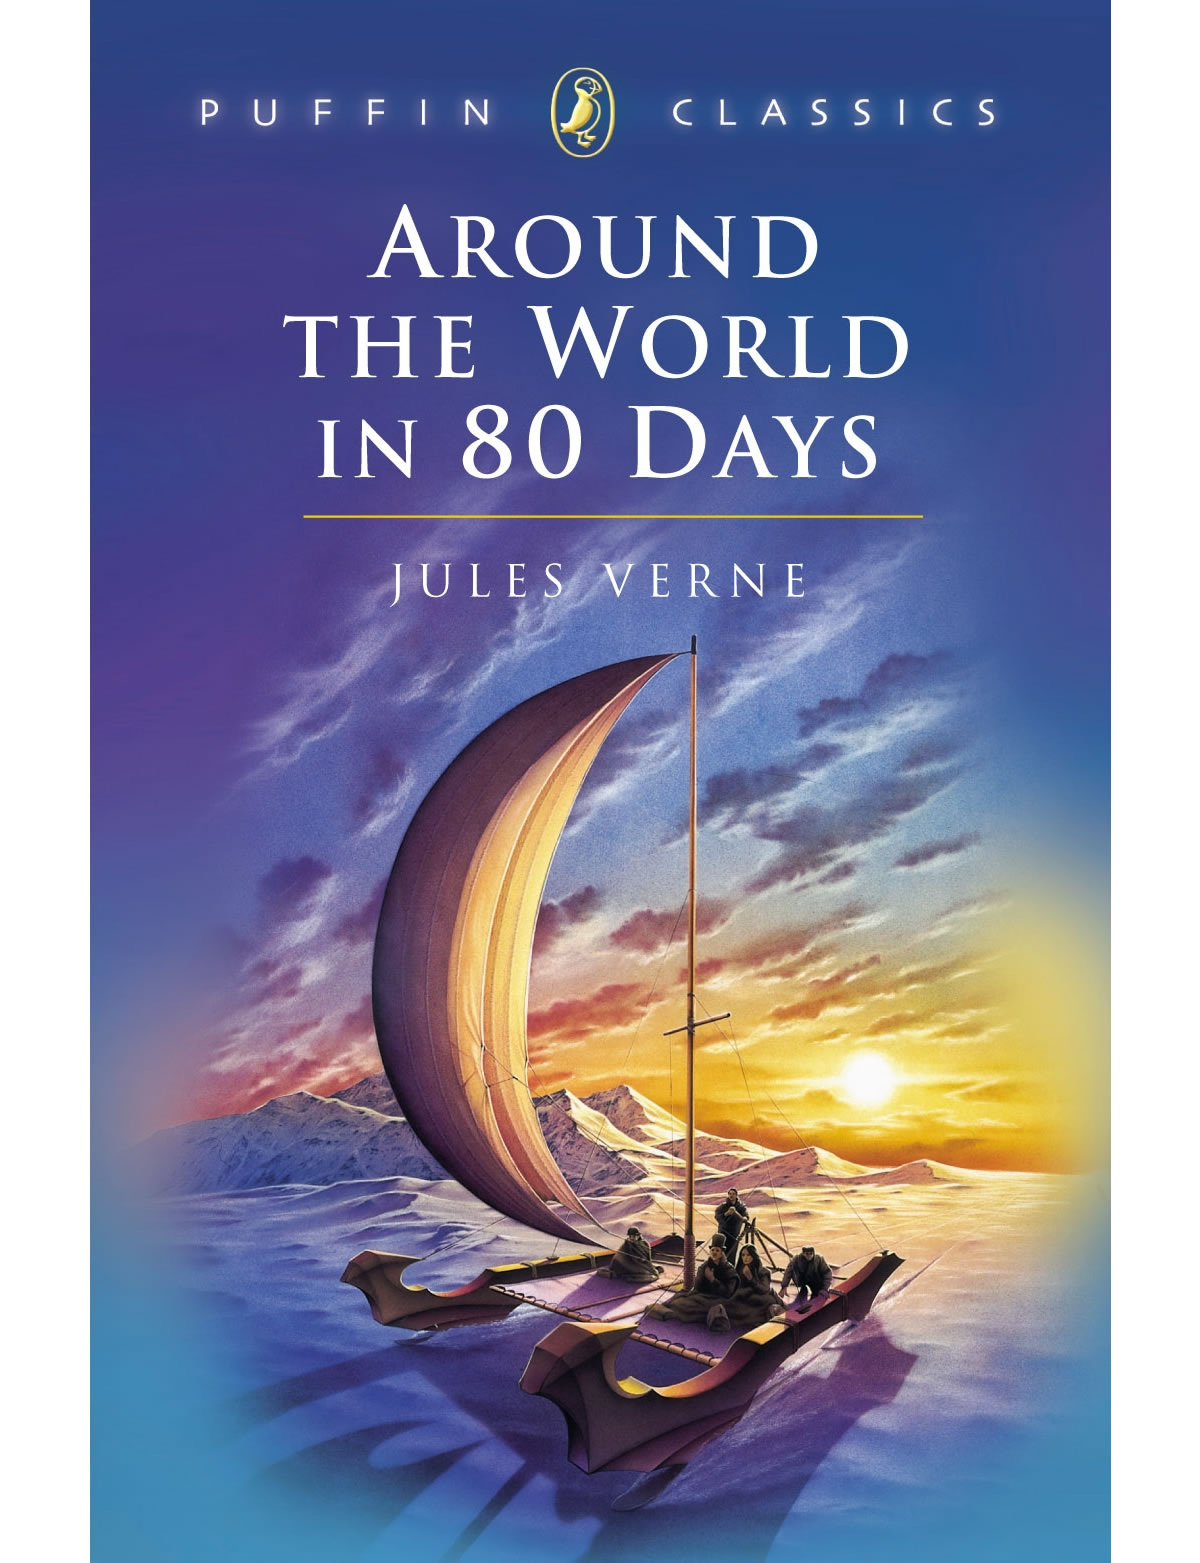 An original gap year! Around the World in Eighty Days by Jules Verne, Image courtesy of Penguin Random House